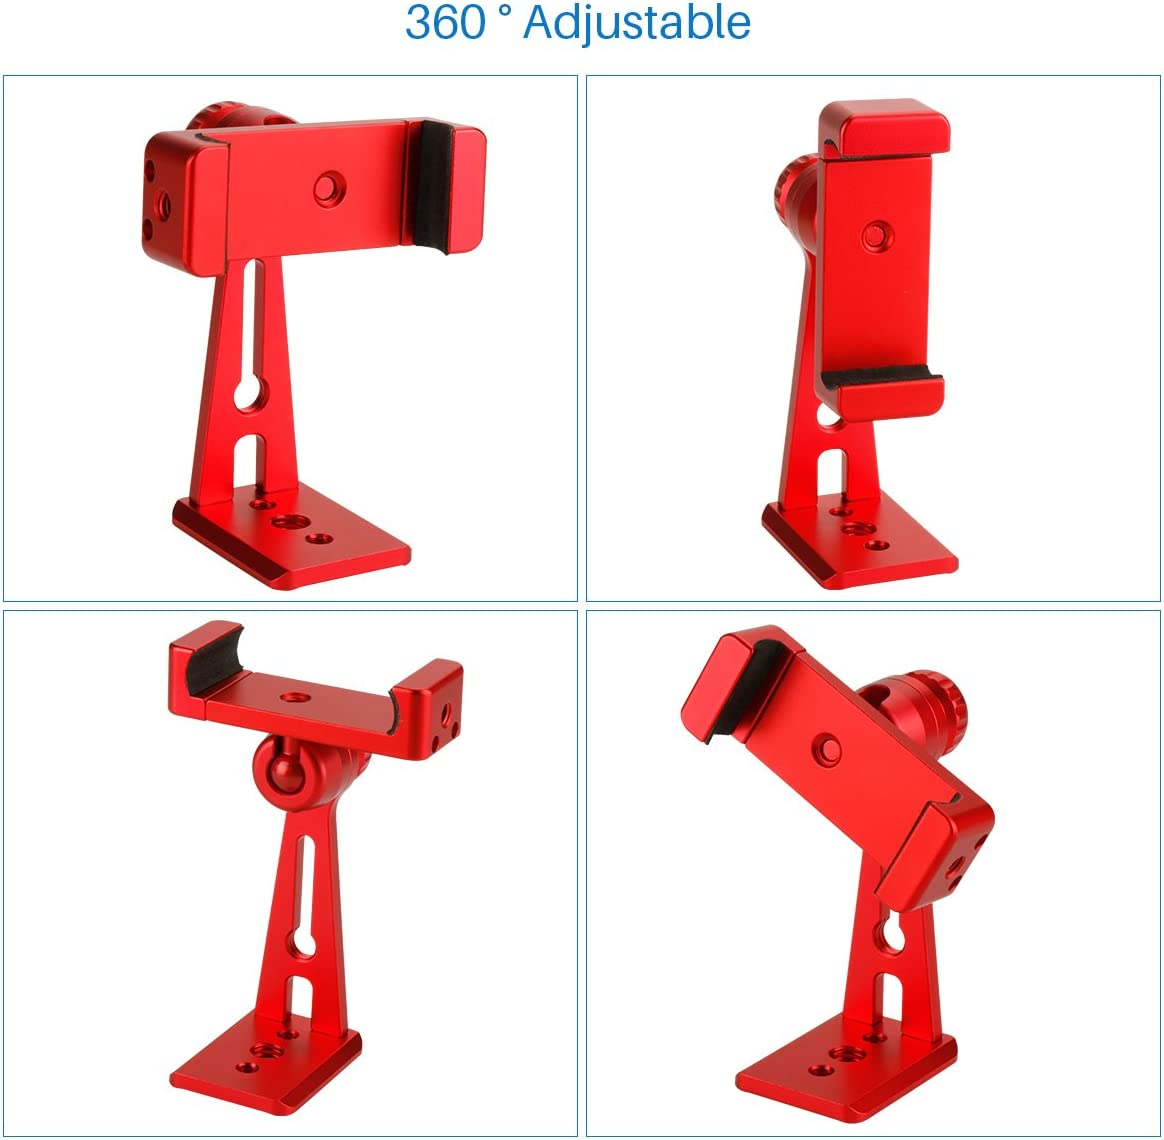 Ulanzi ST-04 Aluminum Phone Tripod Mount Adapter Vertical Video Bracket Cell Phone Clip 360 Degree Smartphone Video Tripod Clamp Compatible for iPhone 11 Xs X Samsung Android Instagram IGTV Livestream